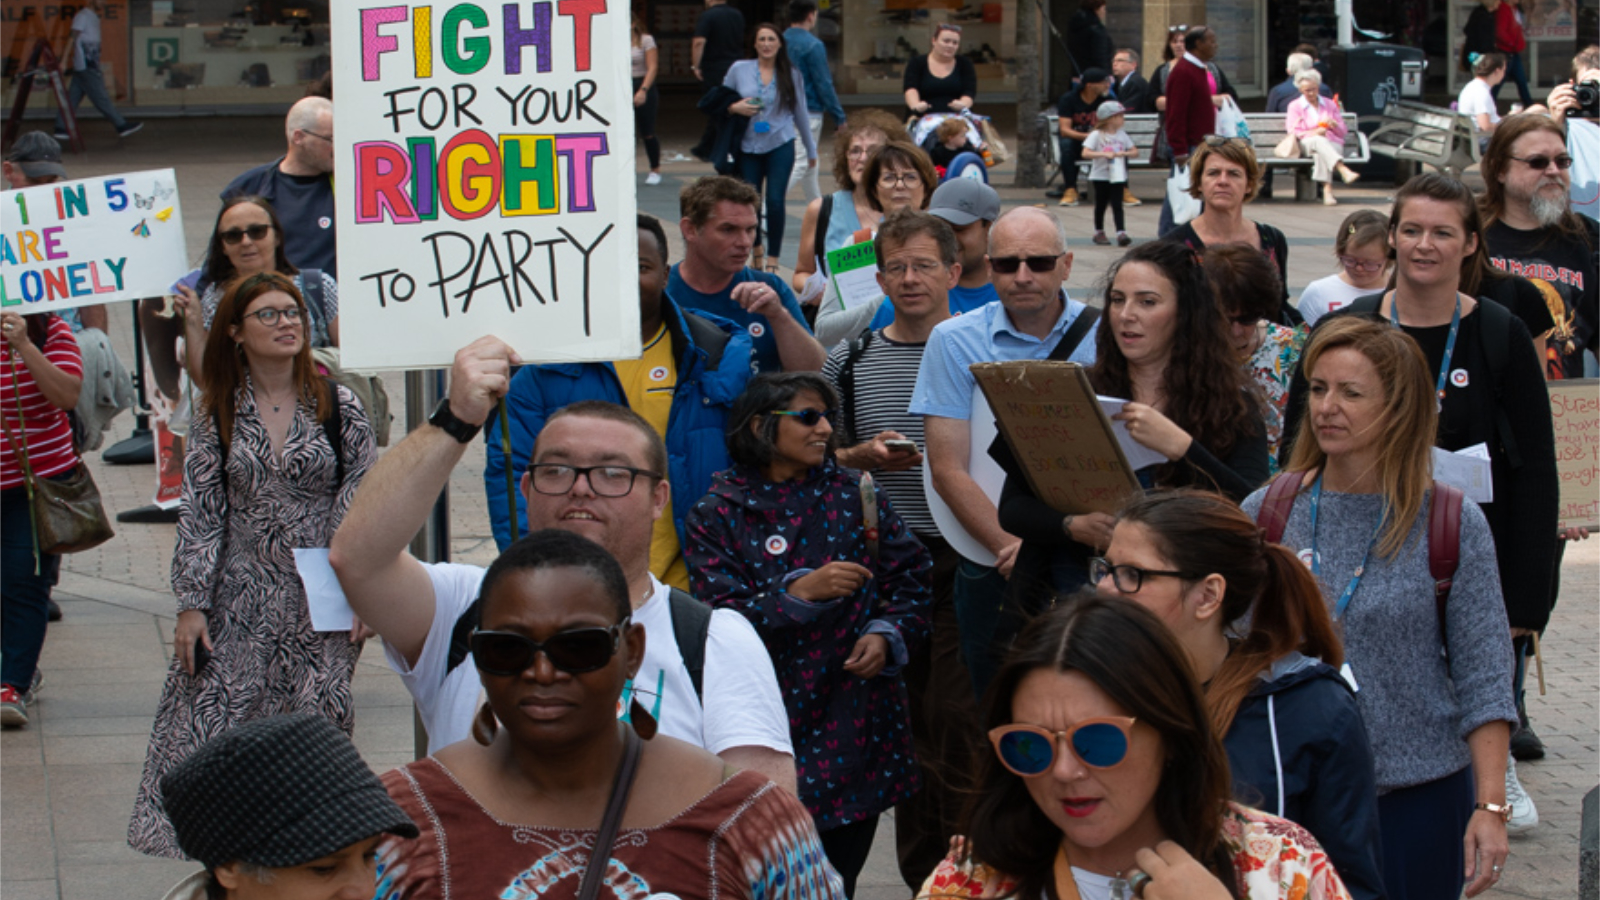 Walk and Talk 2019: Sign in the air saying fight for our right to party. Lots of people walking